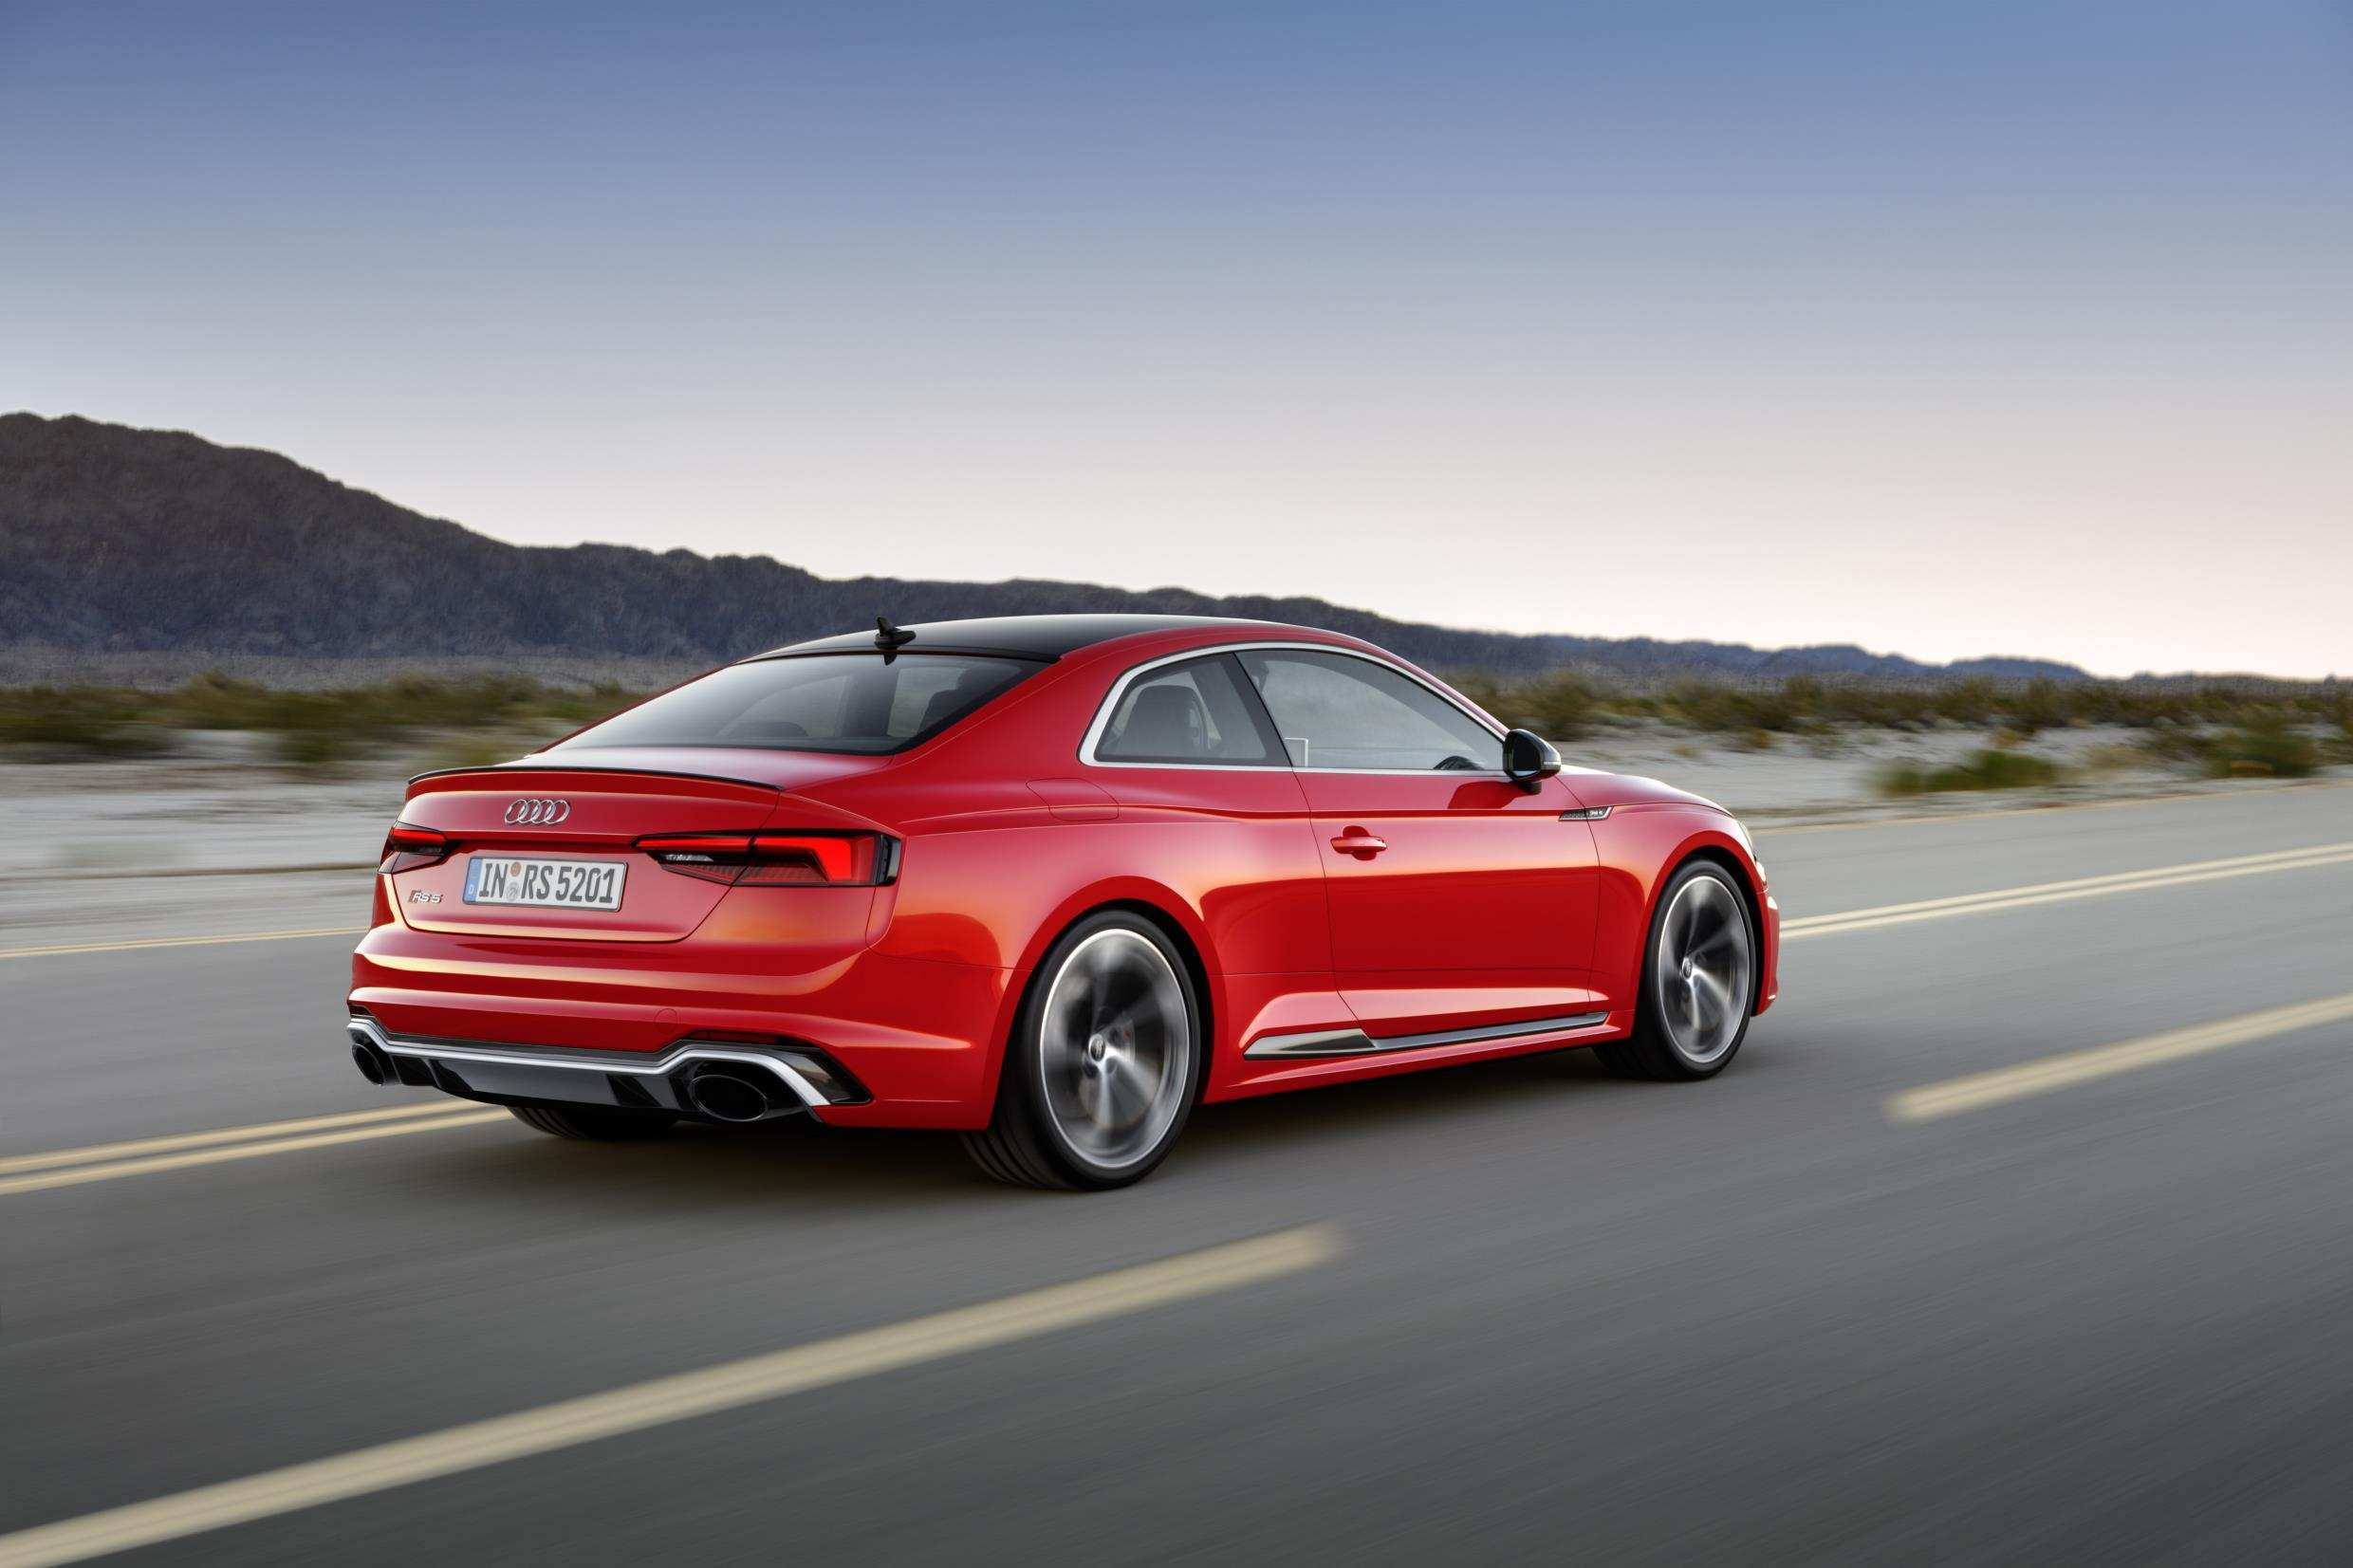 41 All New 2019 Audi Rs5 Release Date Usa Overview for 2019 Audi Rs5 Release Date Usa